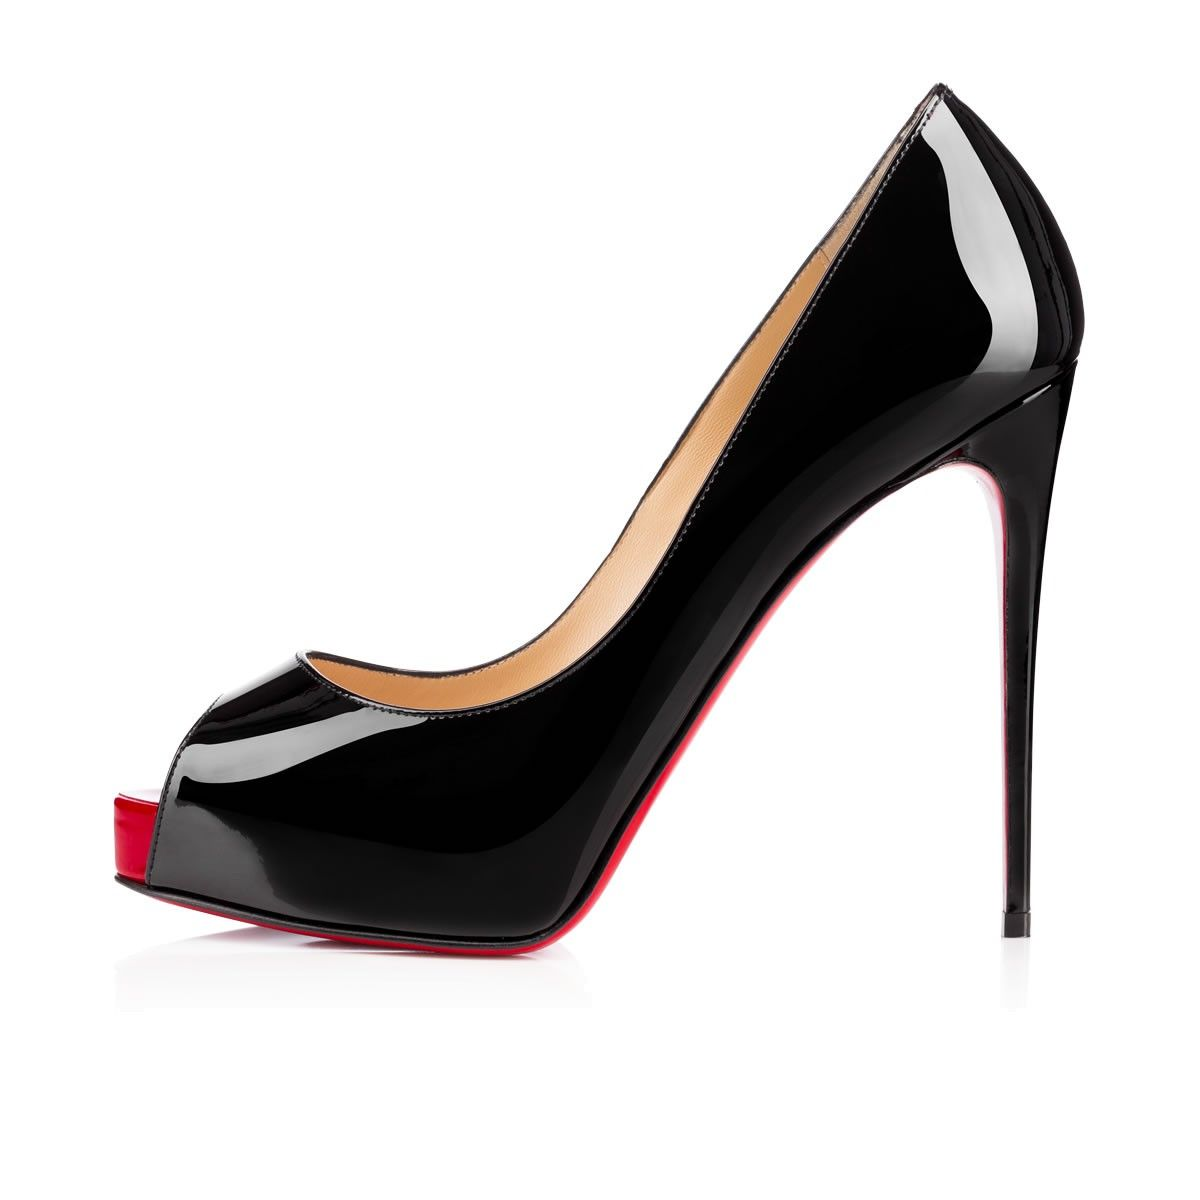 Womens New Very Prive Pumps Christian Louboutin